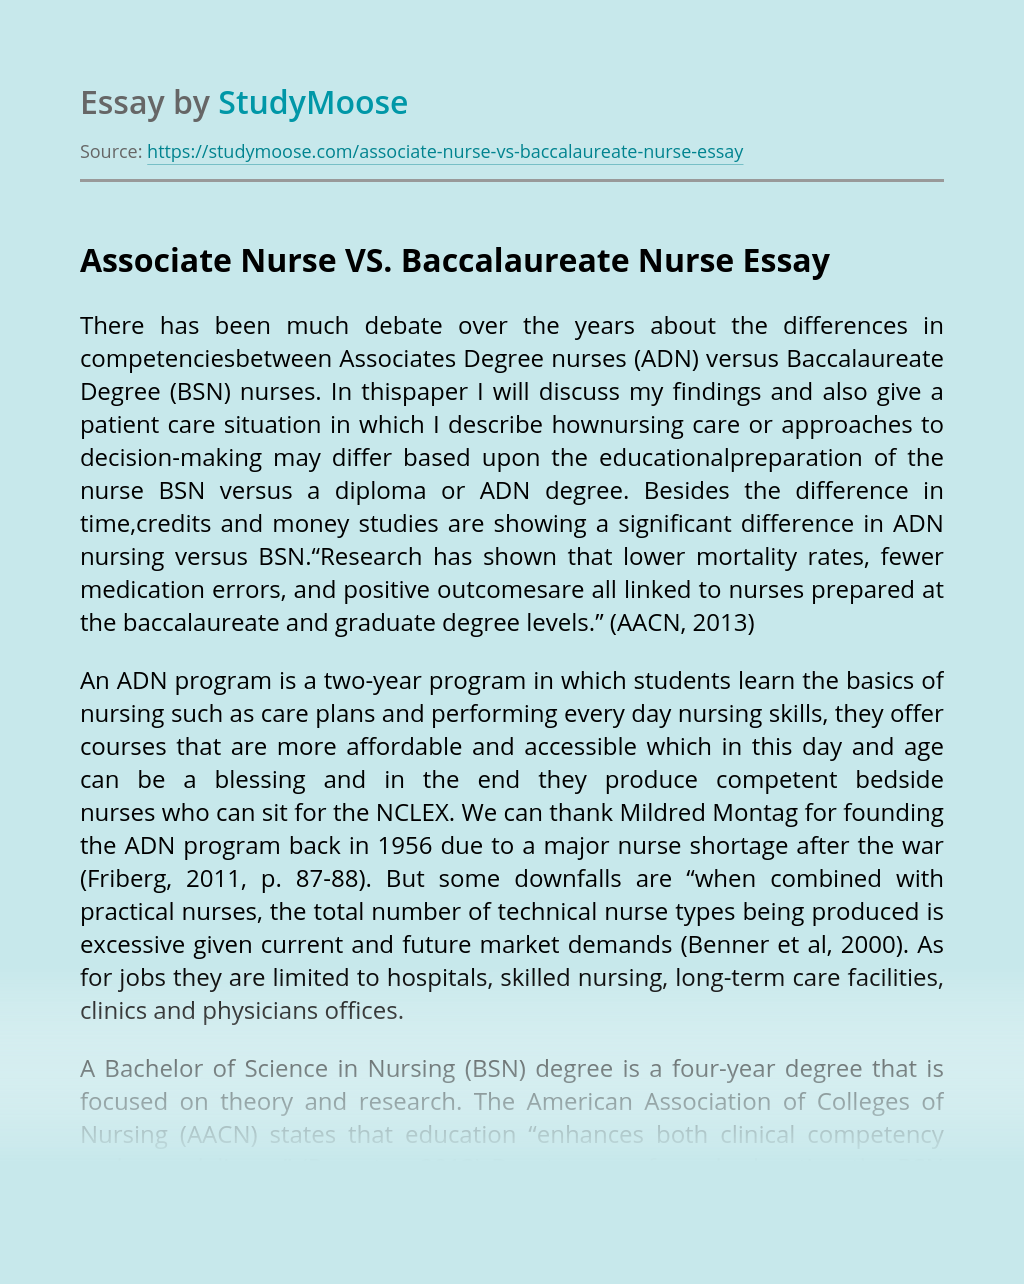 Associate Nurse VS. Baccalaureate Nurse